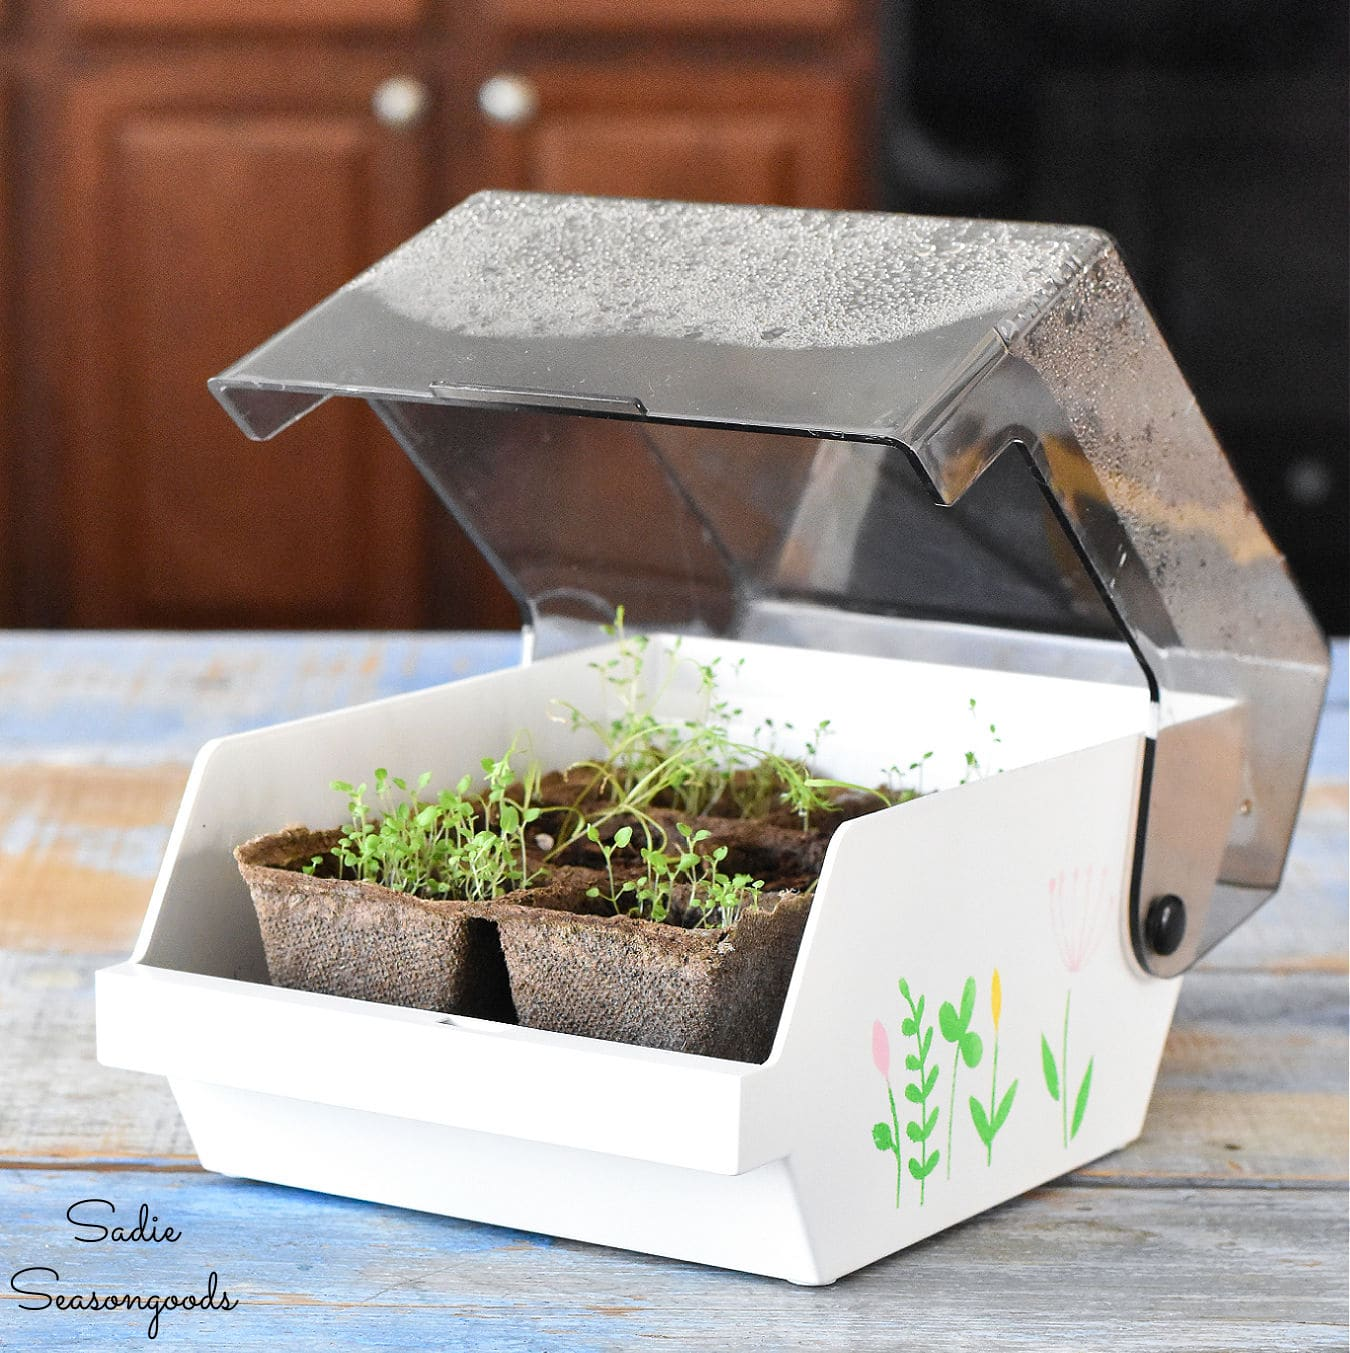 Floppy disk case greenhouse by Sadie Seasongoods, featured on DIY Salvaged Junk Projects 571 on Funky Junk!